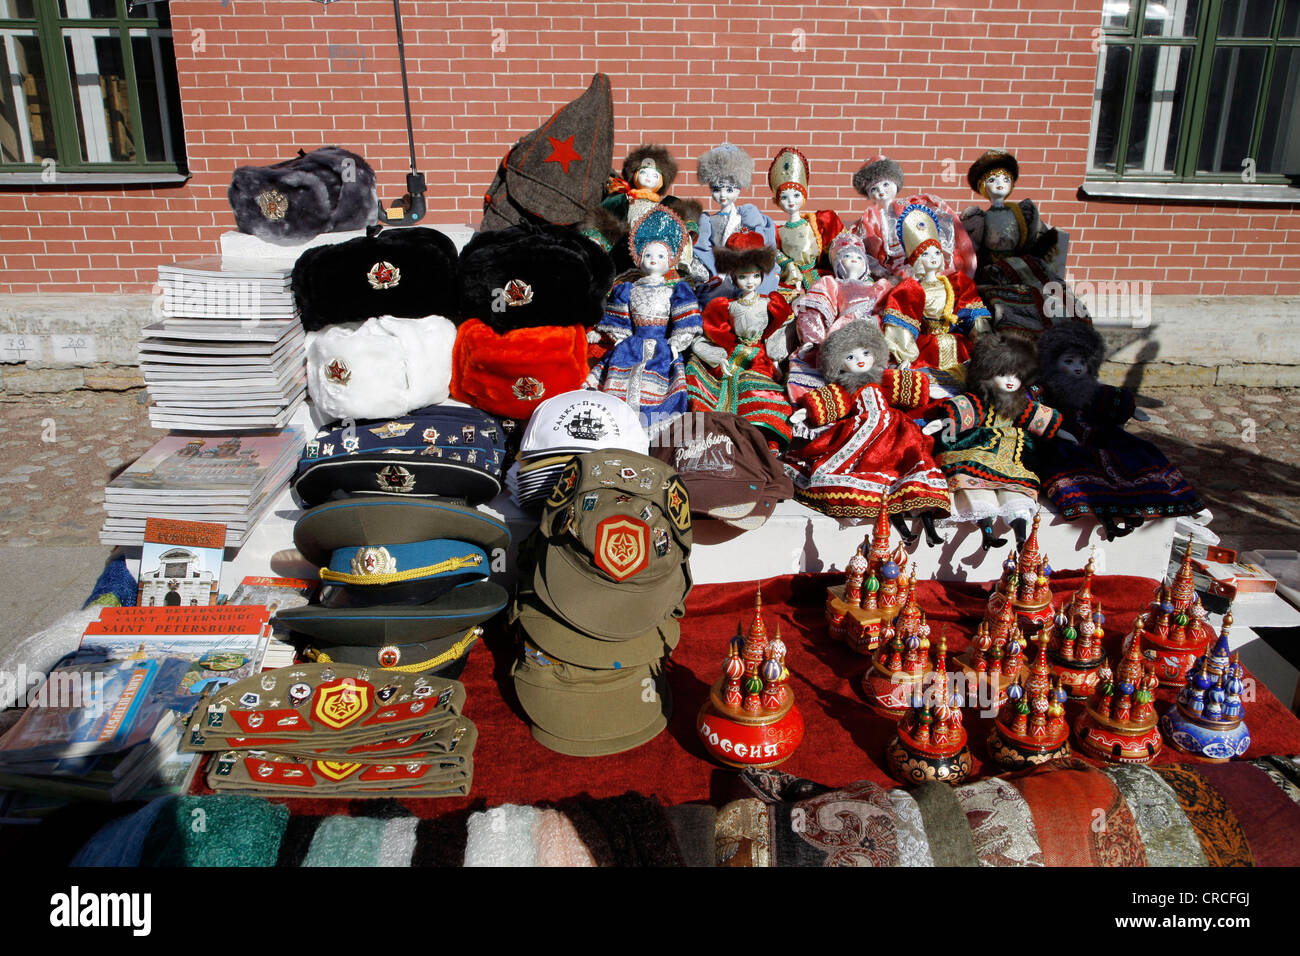 Souvenirs Soldiers Hats And Dolls St Petersburg Russia